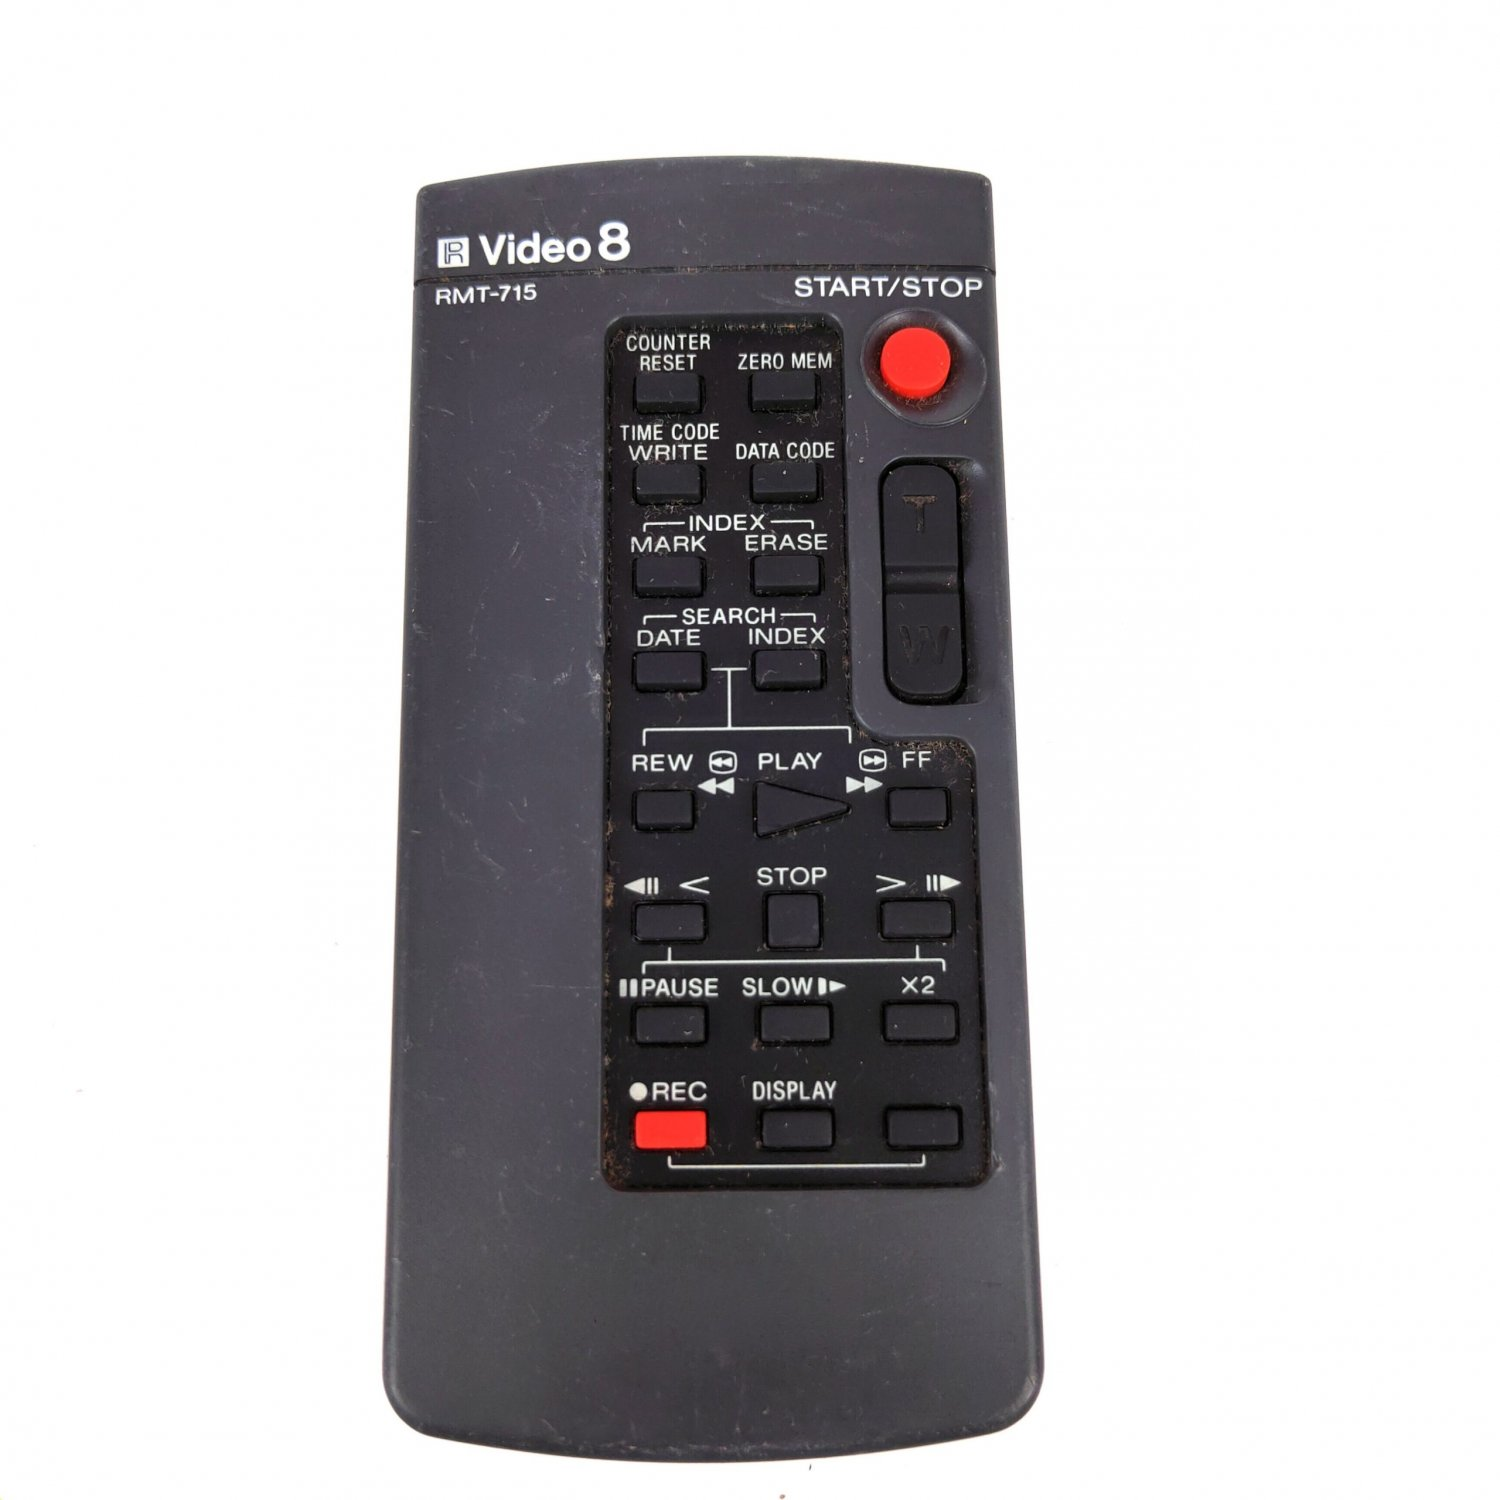 Used Original RMT-715 Remote Control For SONY CAMCORDER CCD-SC55 TR2300 TR3300 TR555